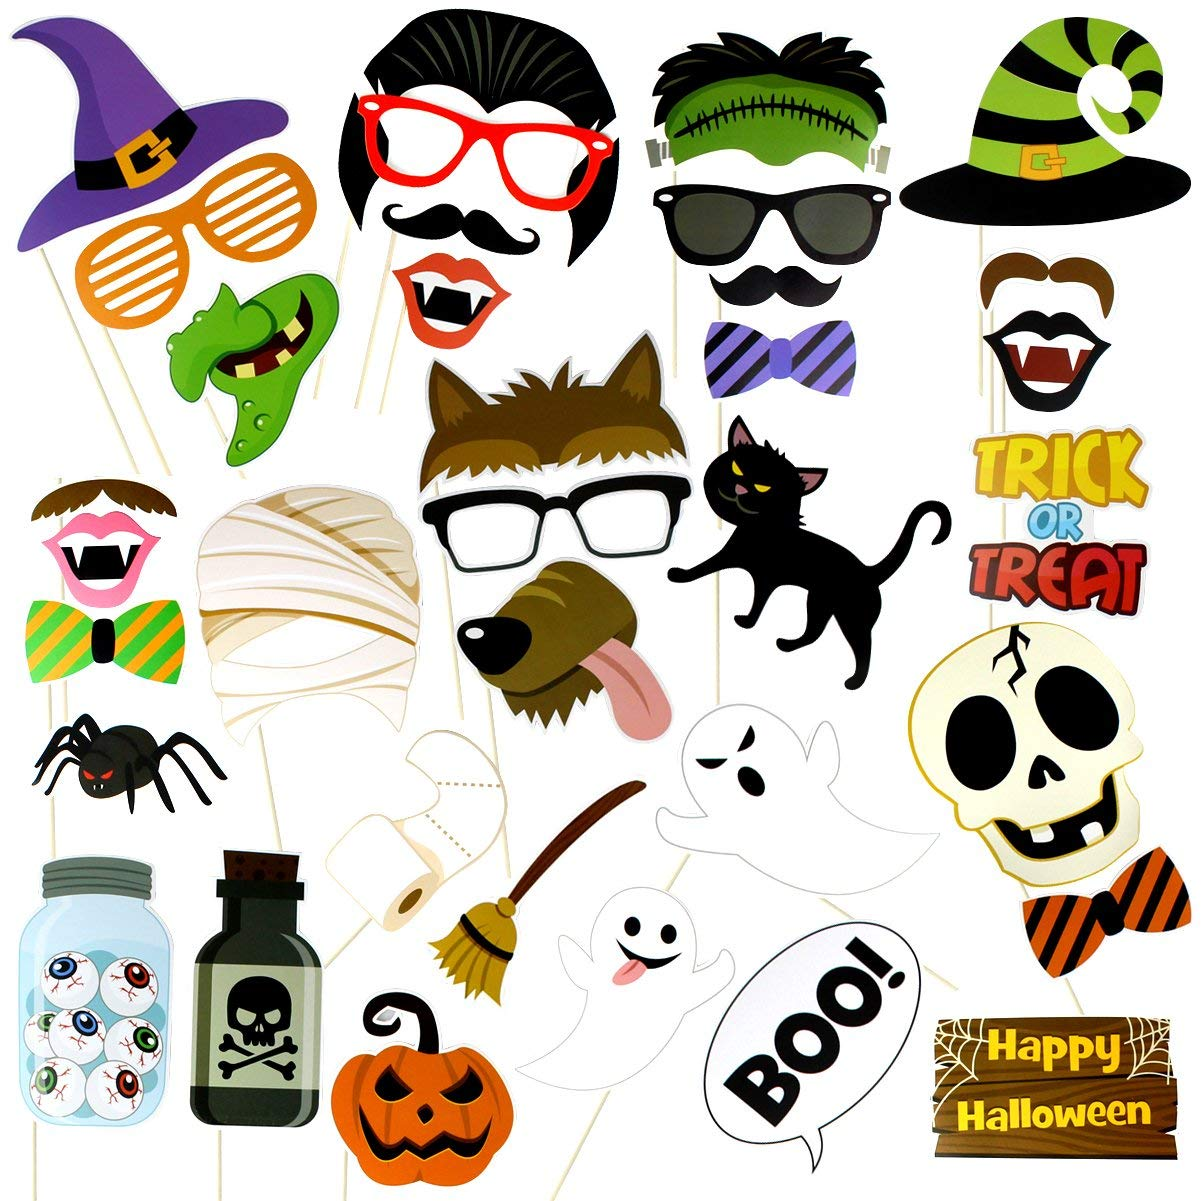 Buy Halloween Masks Halloween Props Photo Cool Funny Booth